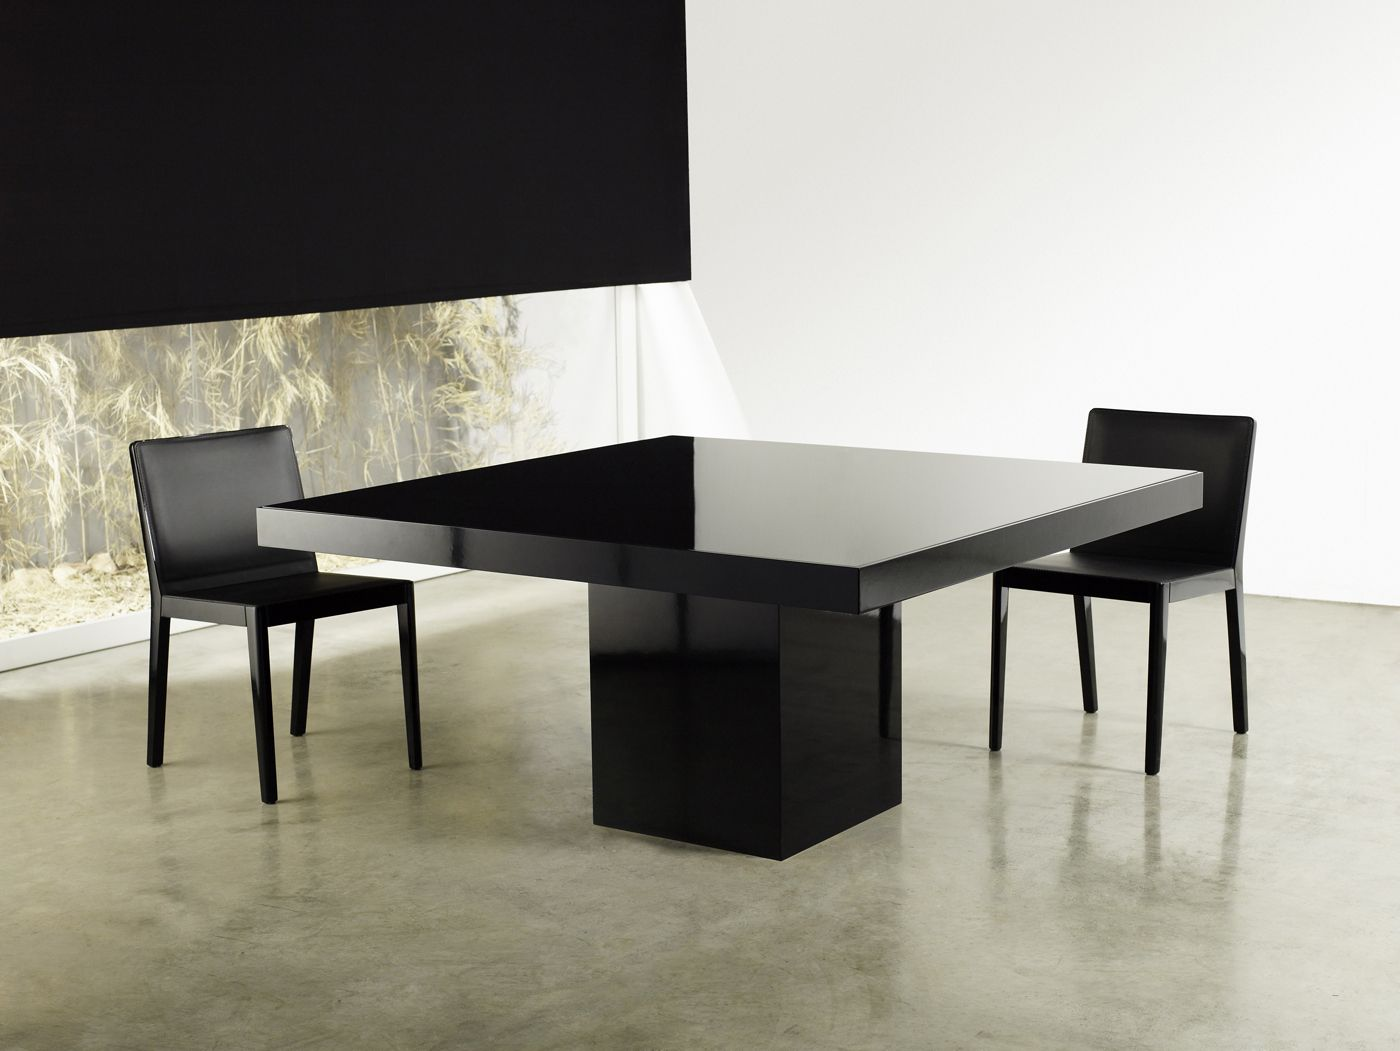 Beech Square Dining Table Features Central Base And Table Top In